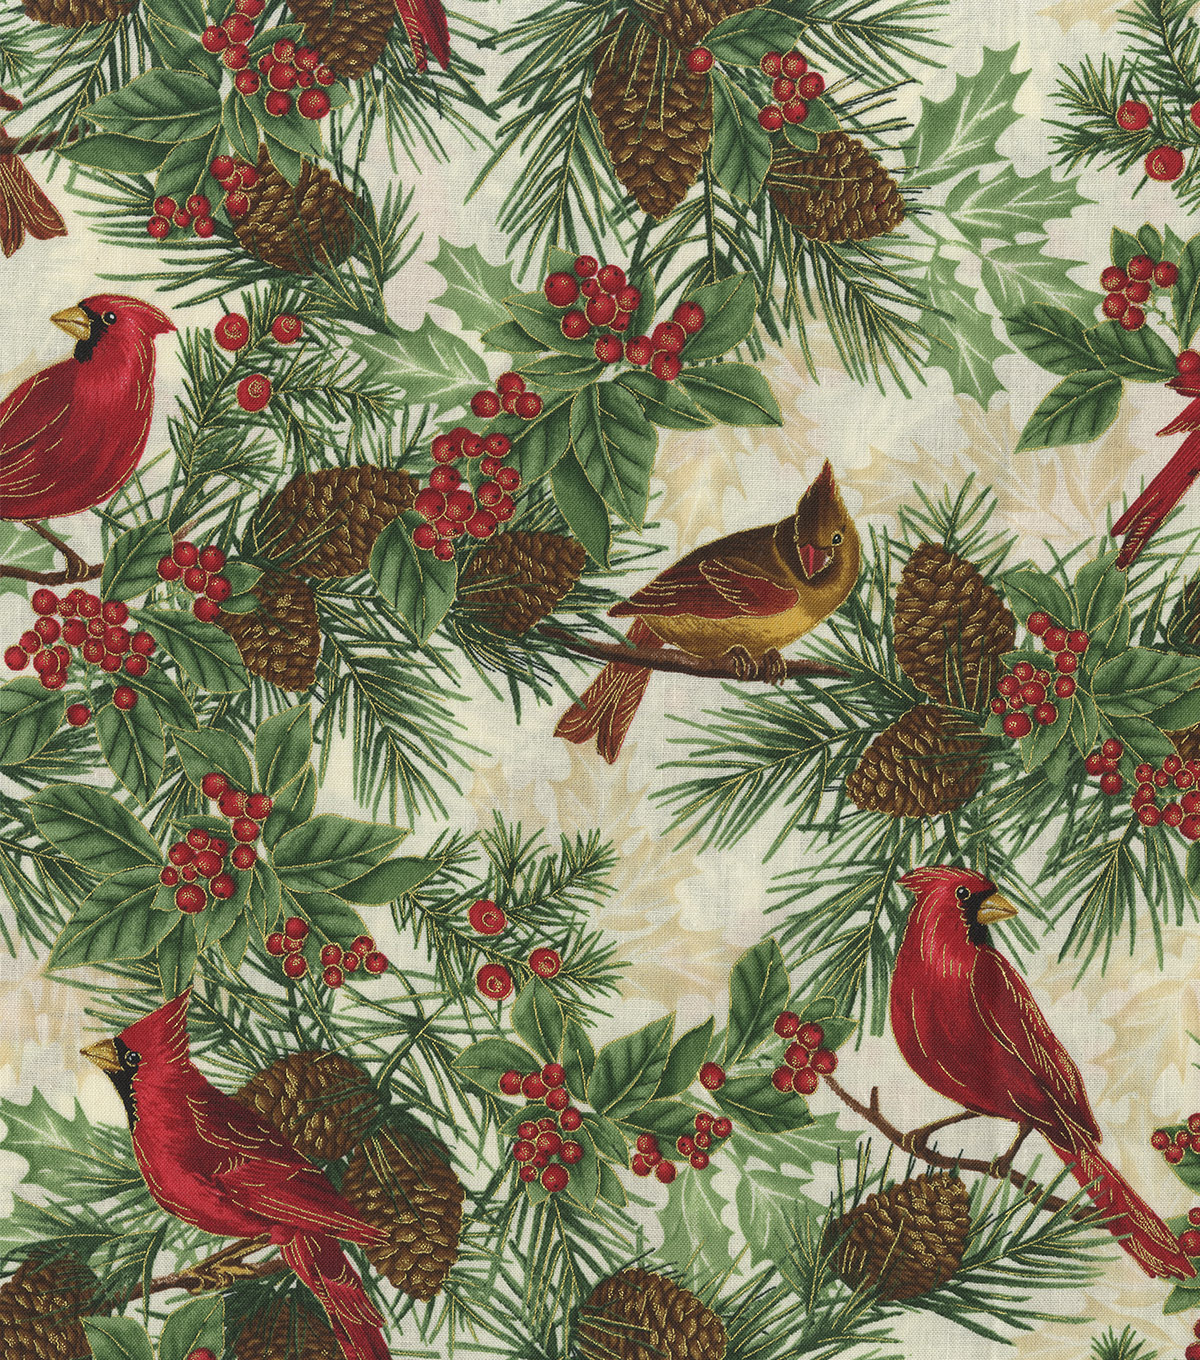 Christmas Cotton Fabric-Cardnials & Pinecones Metallic